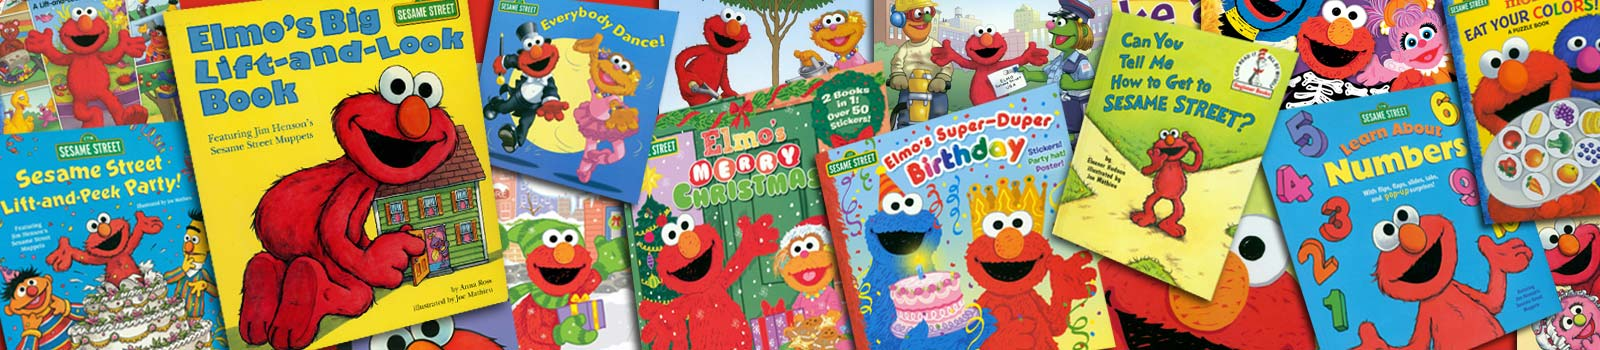 Joe Mathieu Books about Elmo